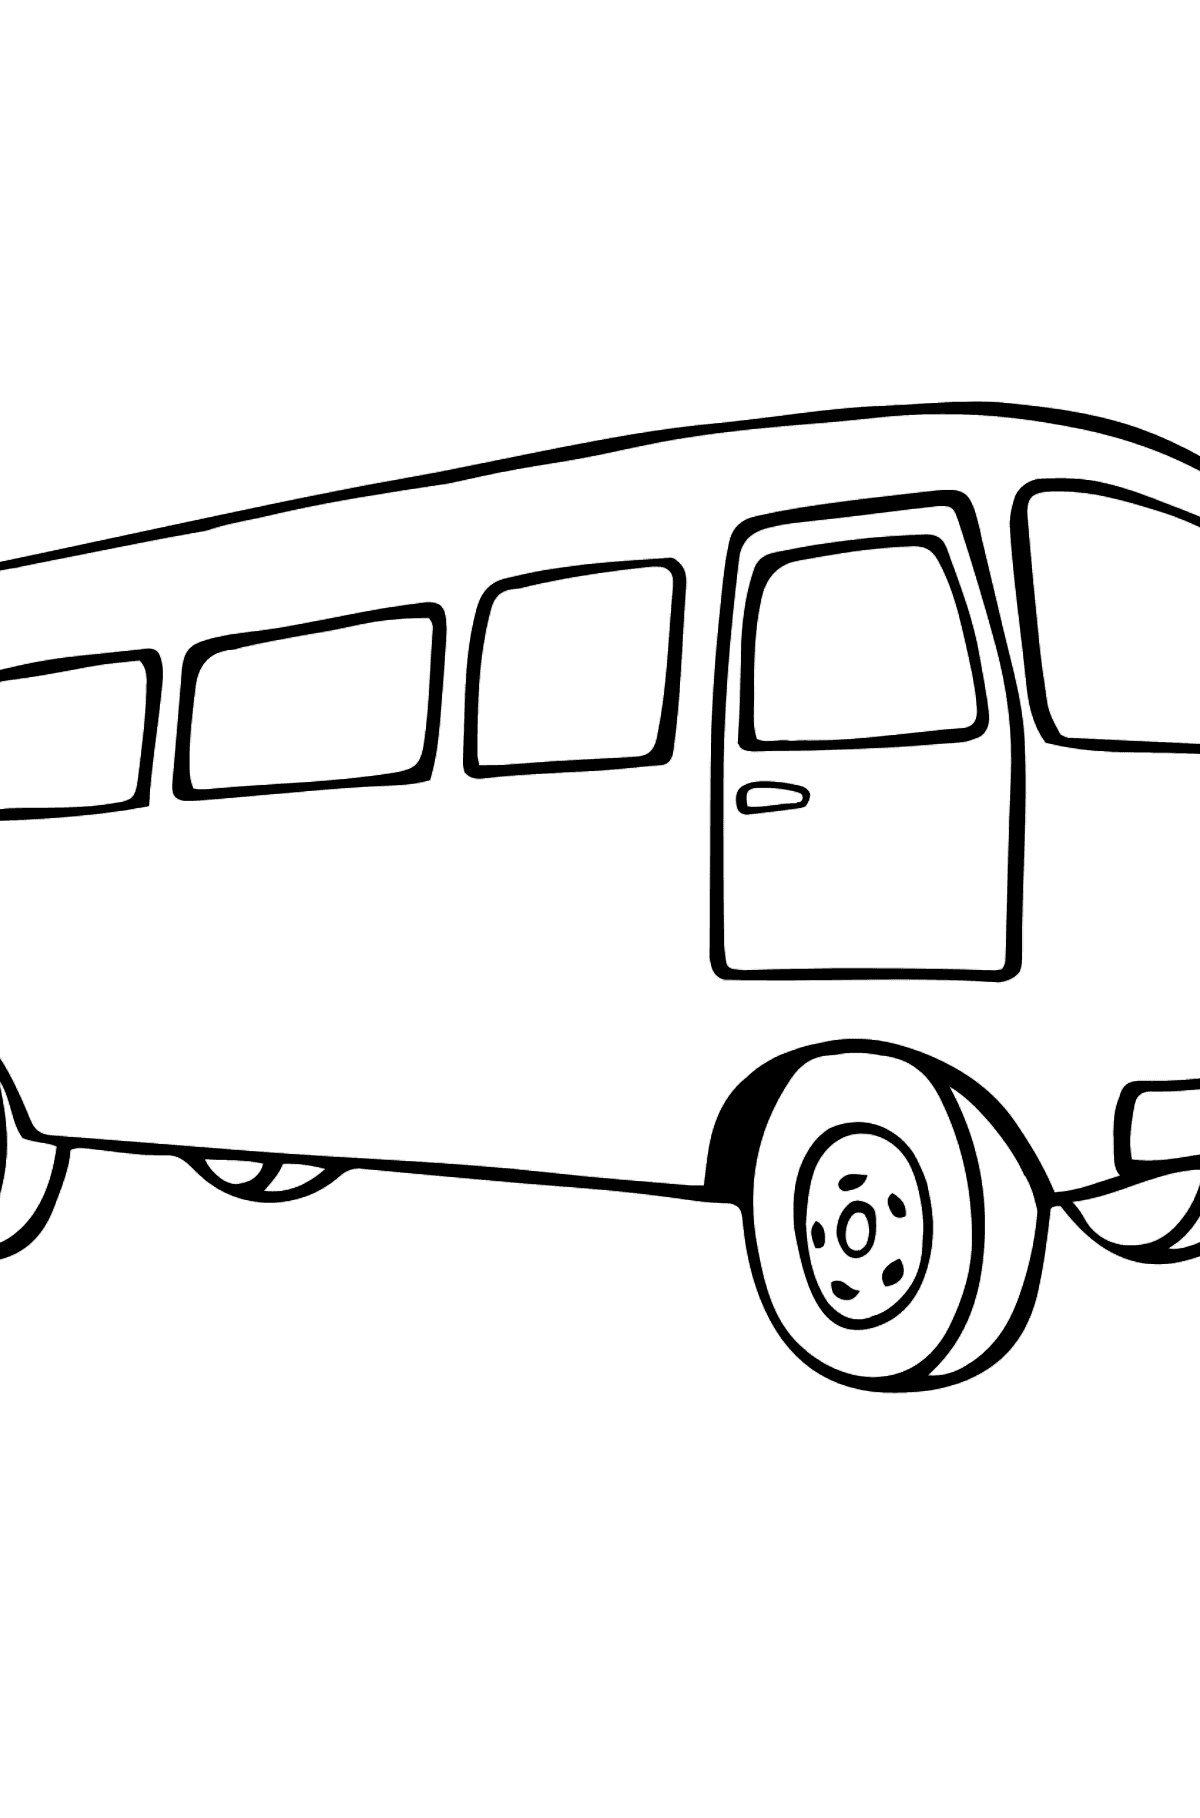 Simple Coloring Page - A Joyful Bus - Coloring Pages for Kids